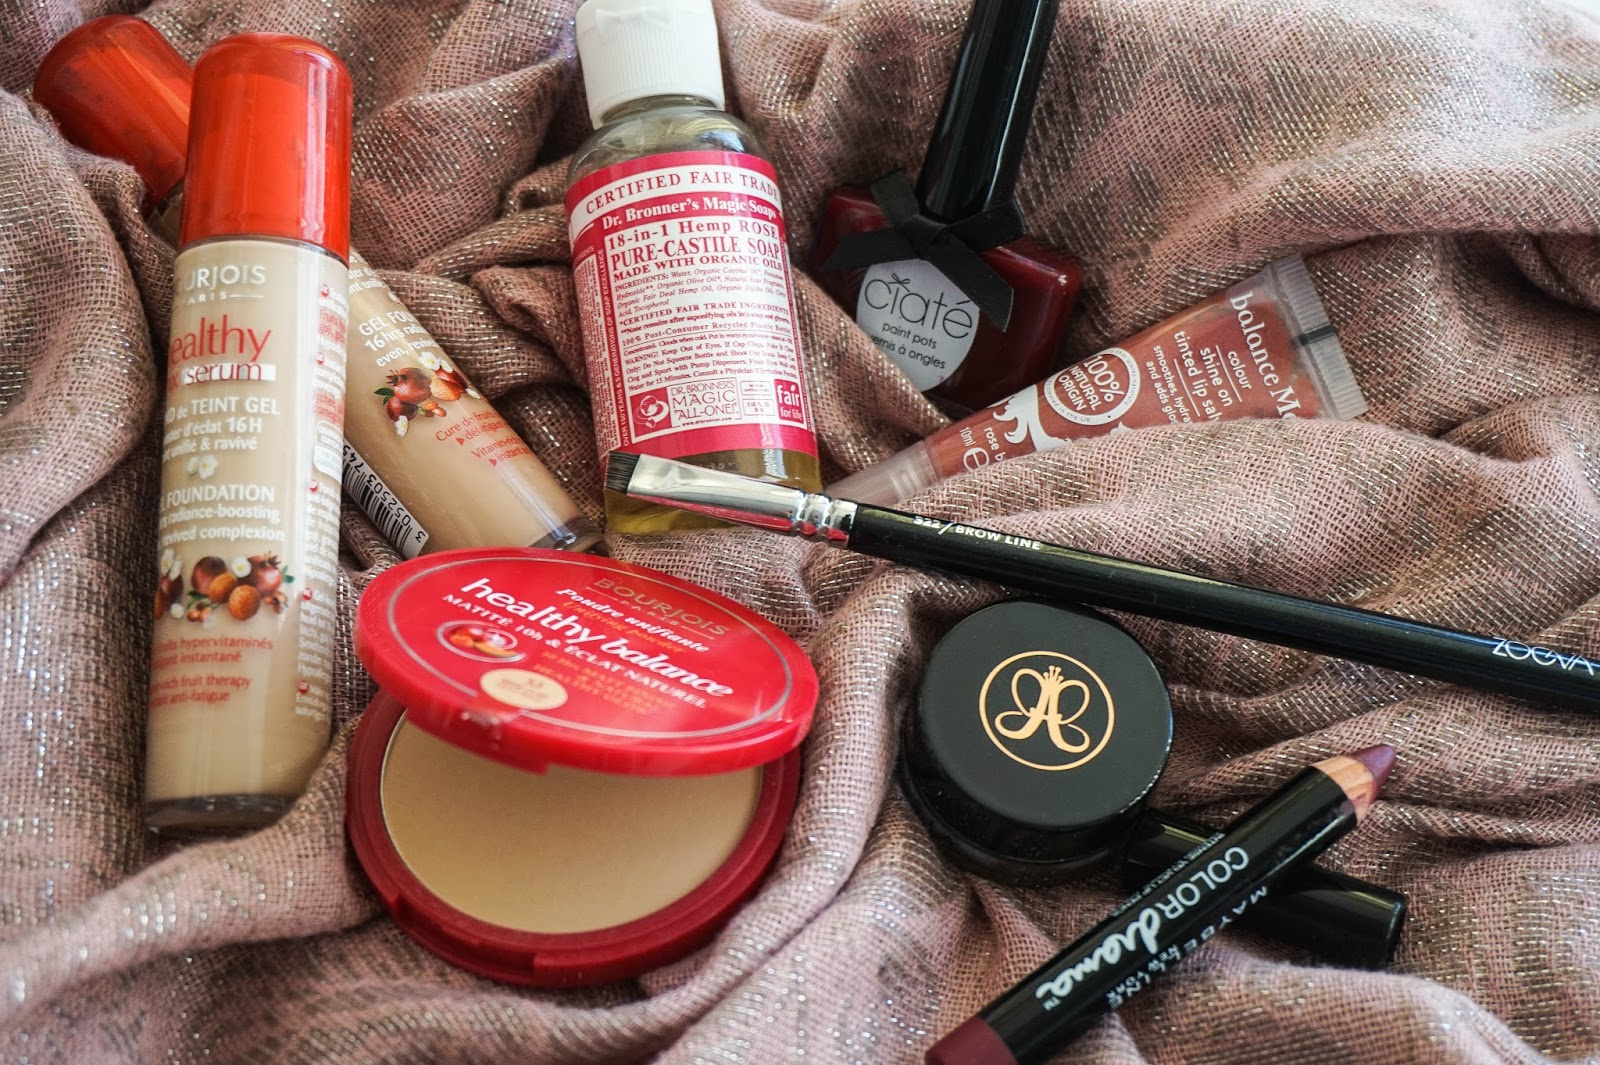 October Favourites: Bourjois, Balance Me, Maybelline, Anastasia Beverly Hills, Zoeva, Ciate, Dr. Bronner Magic Soap